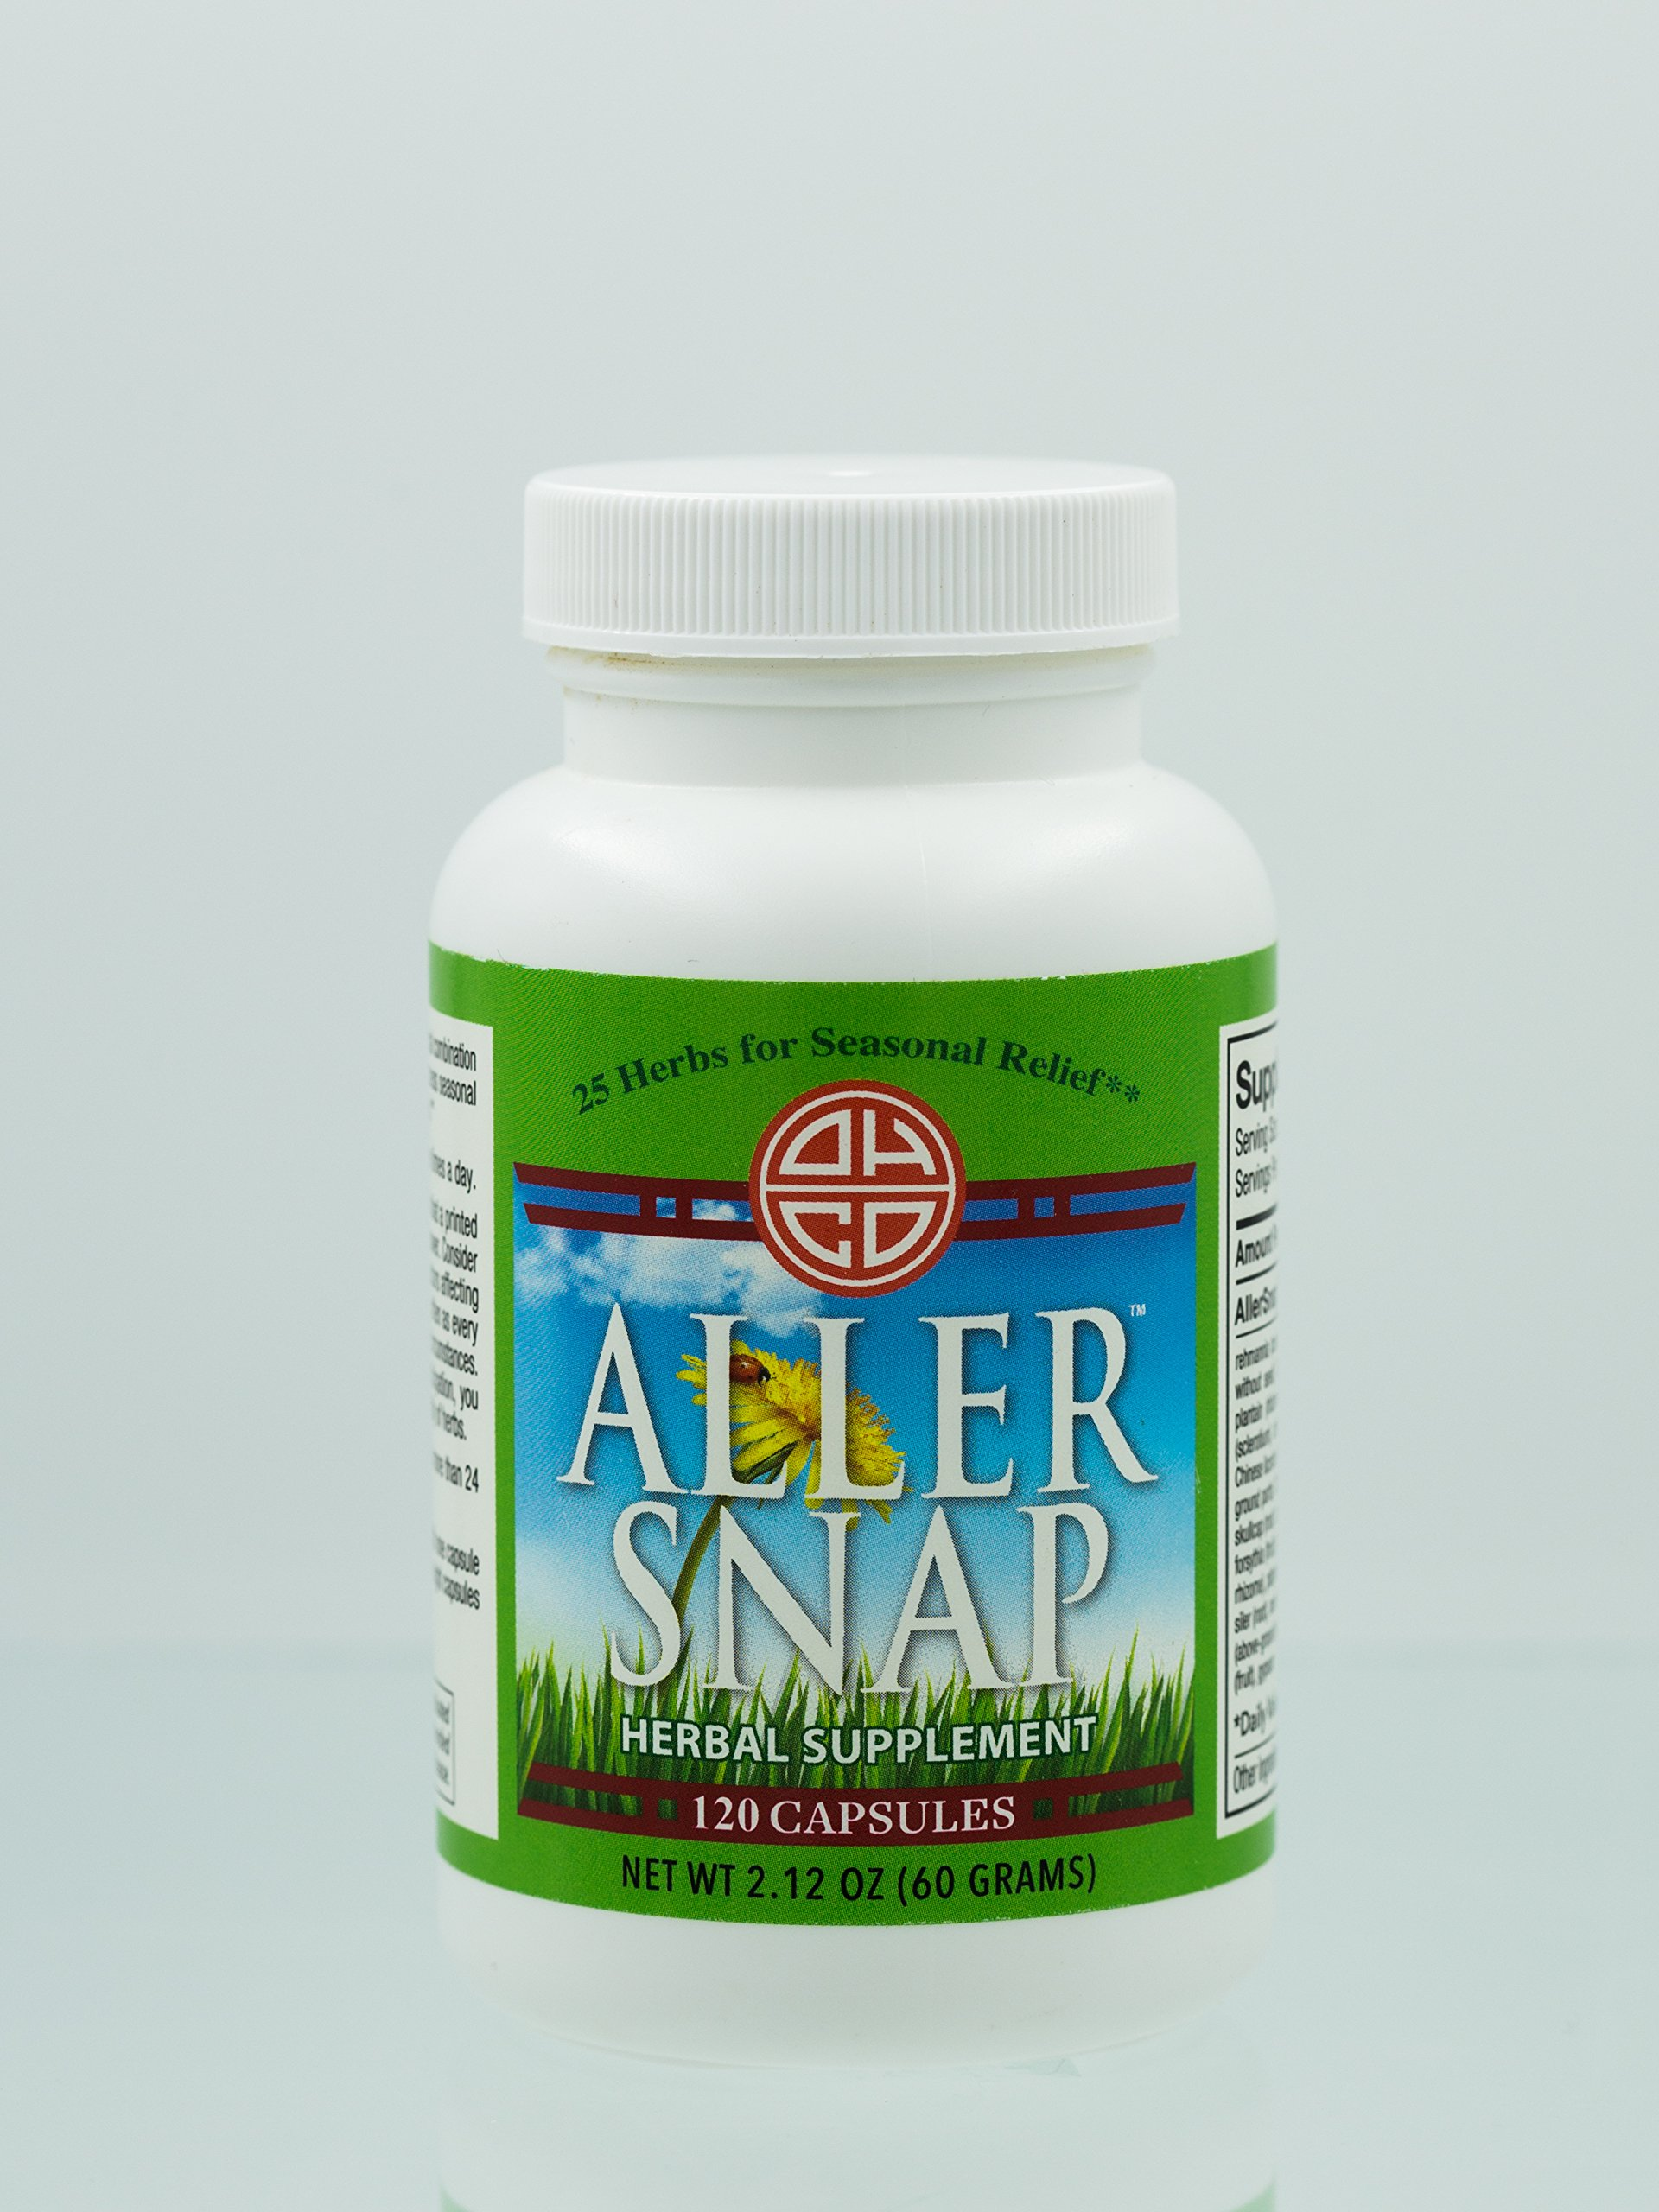 OHCO AllerSnap - Seasonal Allergy Relief to Reduce Inflammation and Irritation Caused By Allergies - Natural and Effective Medication Formulated with 25 Herbs - Safe for All Ages {60 Capsules}